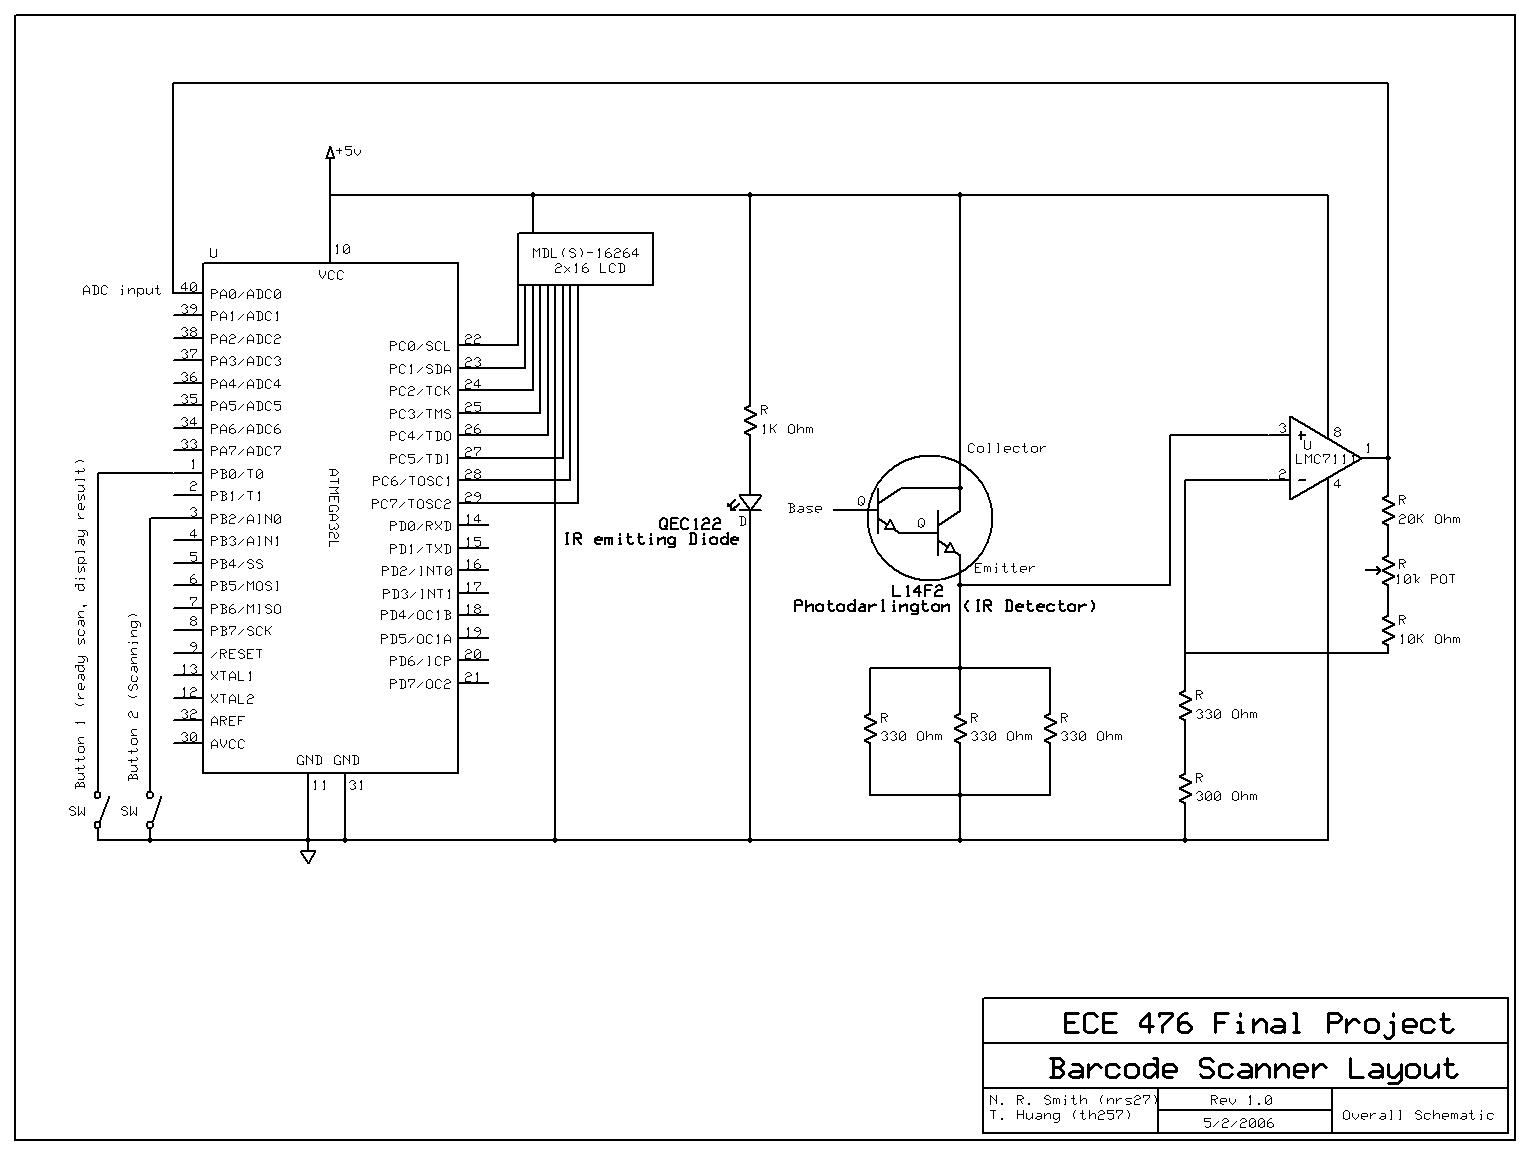 Photo Detector Barcode Scanner Ir Led And Diode Object Detection Circuit Diagram Click On The Picture To See In Full Size This Will Open Up A New Window So Please Disable Any Pop Blocker First If You Cant Seem Access